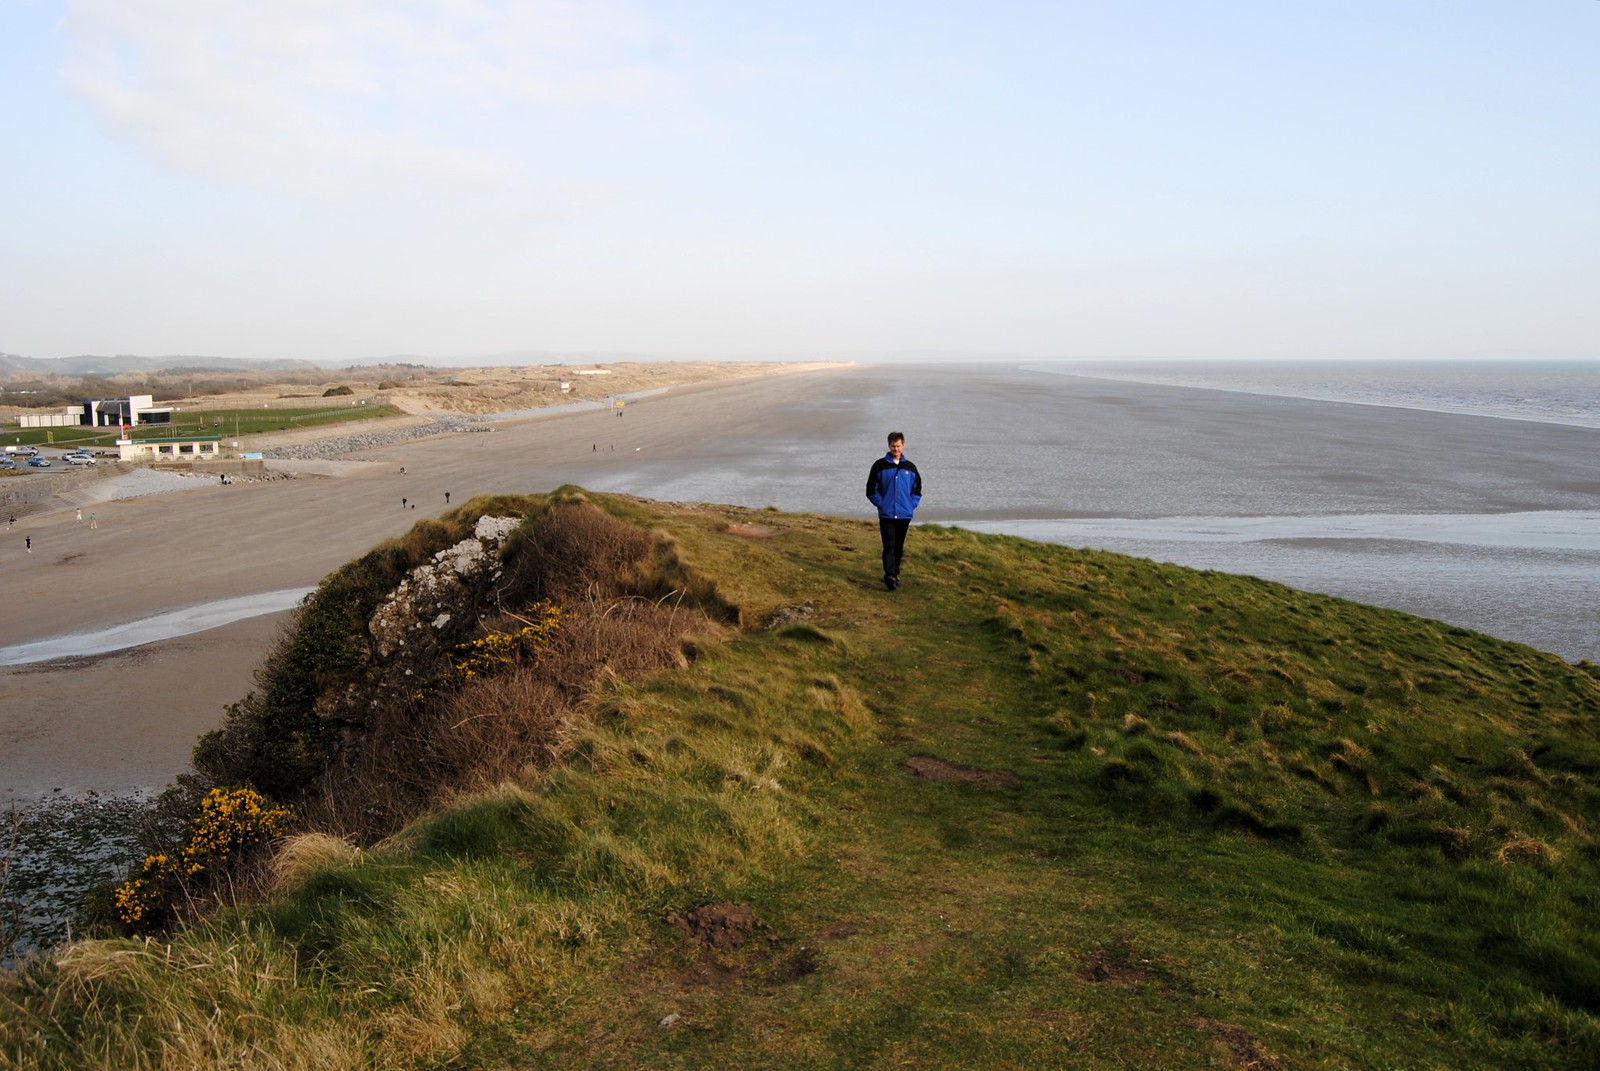 An overview of Pendine Sands, with nothing but sand stretching out into the distance.